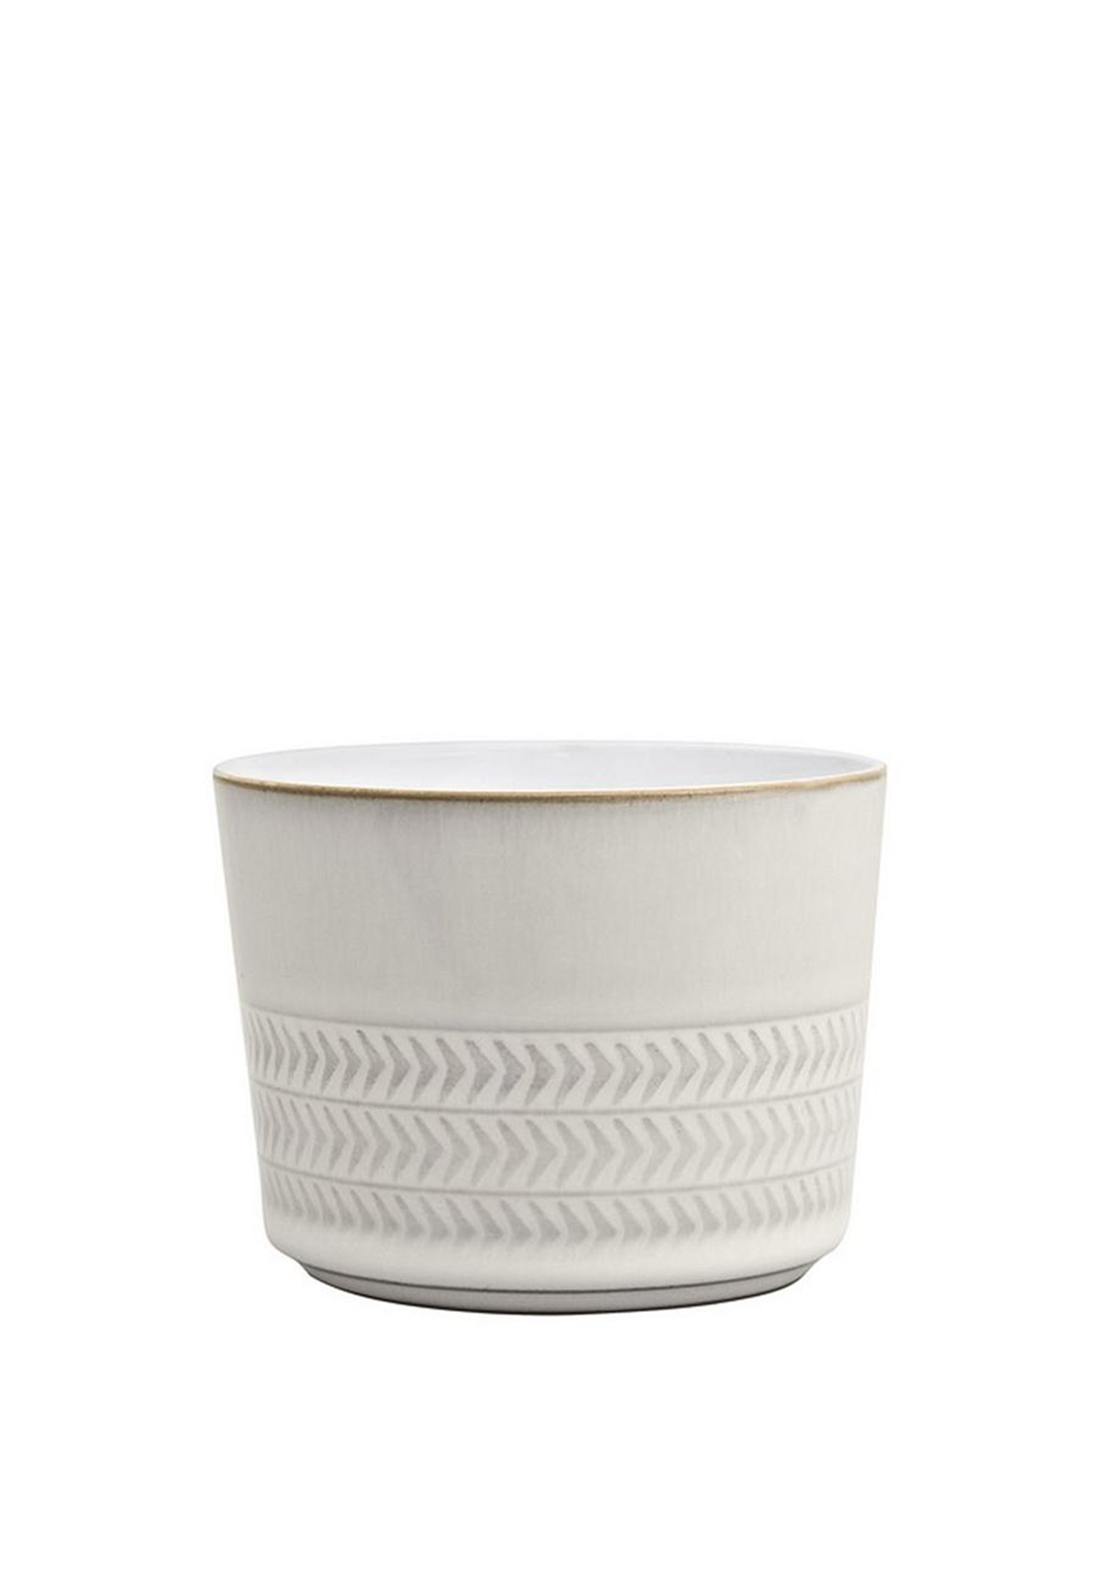 Denby Natural Canvas Textured Open Sugar Bowl/Ramekin